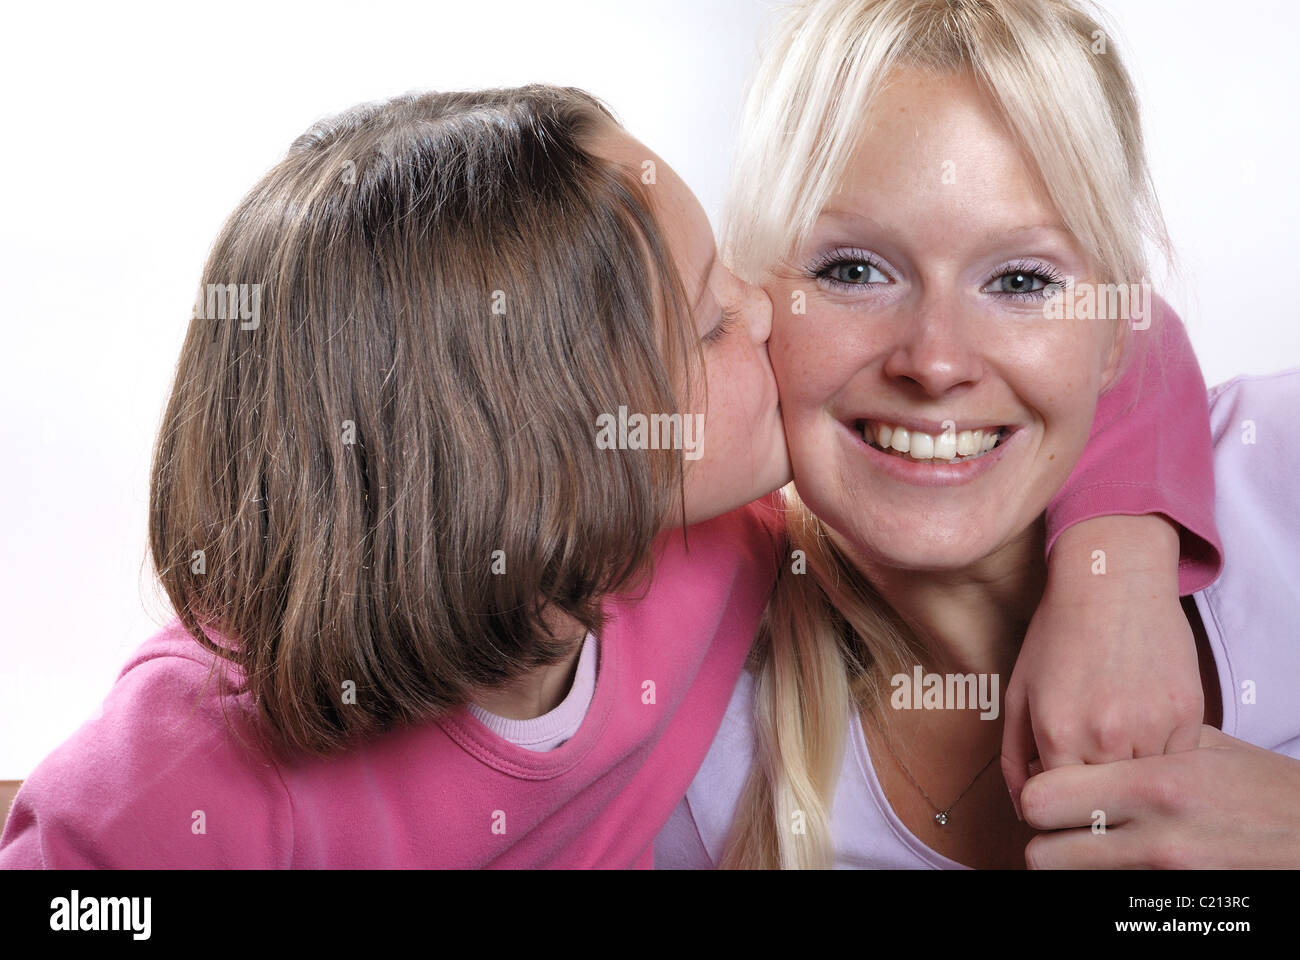 Complicity between mother and daughter - Stock Image